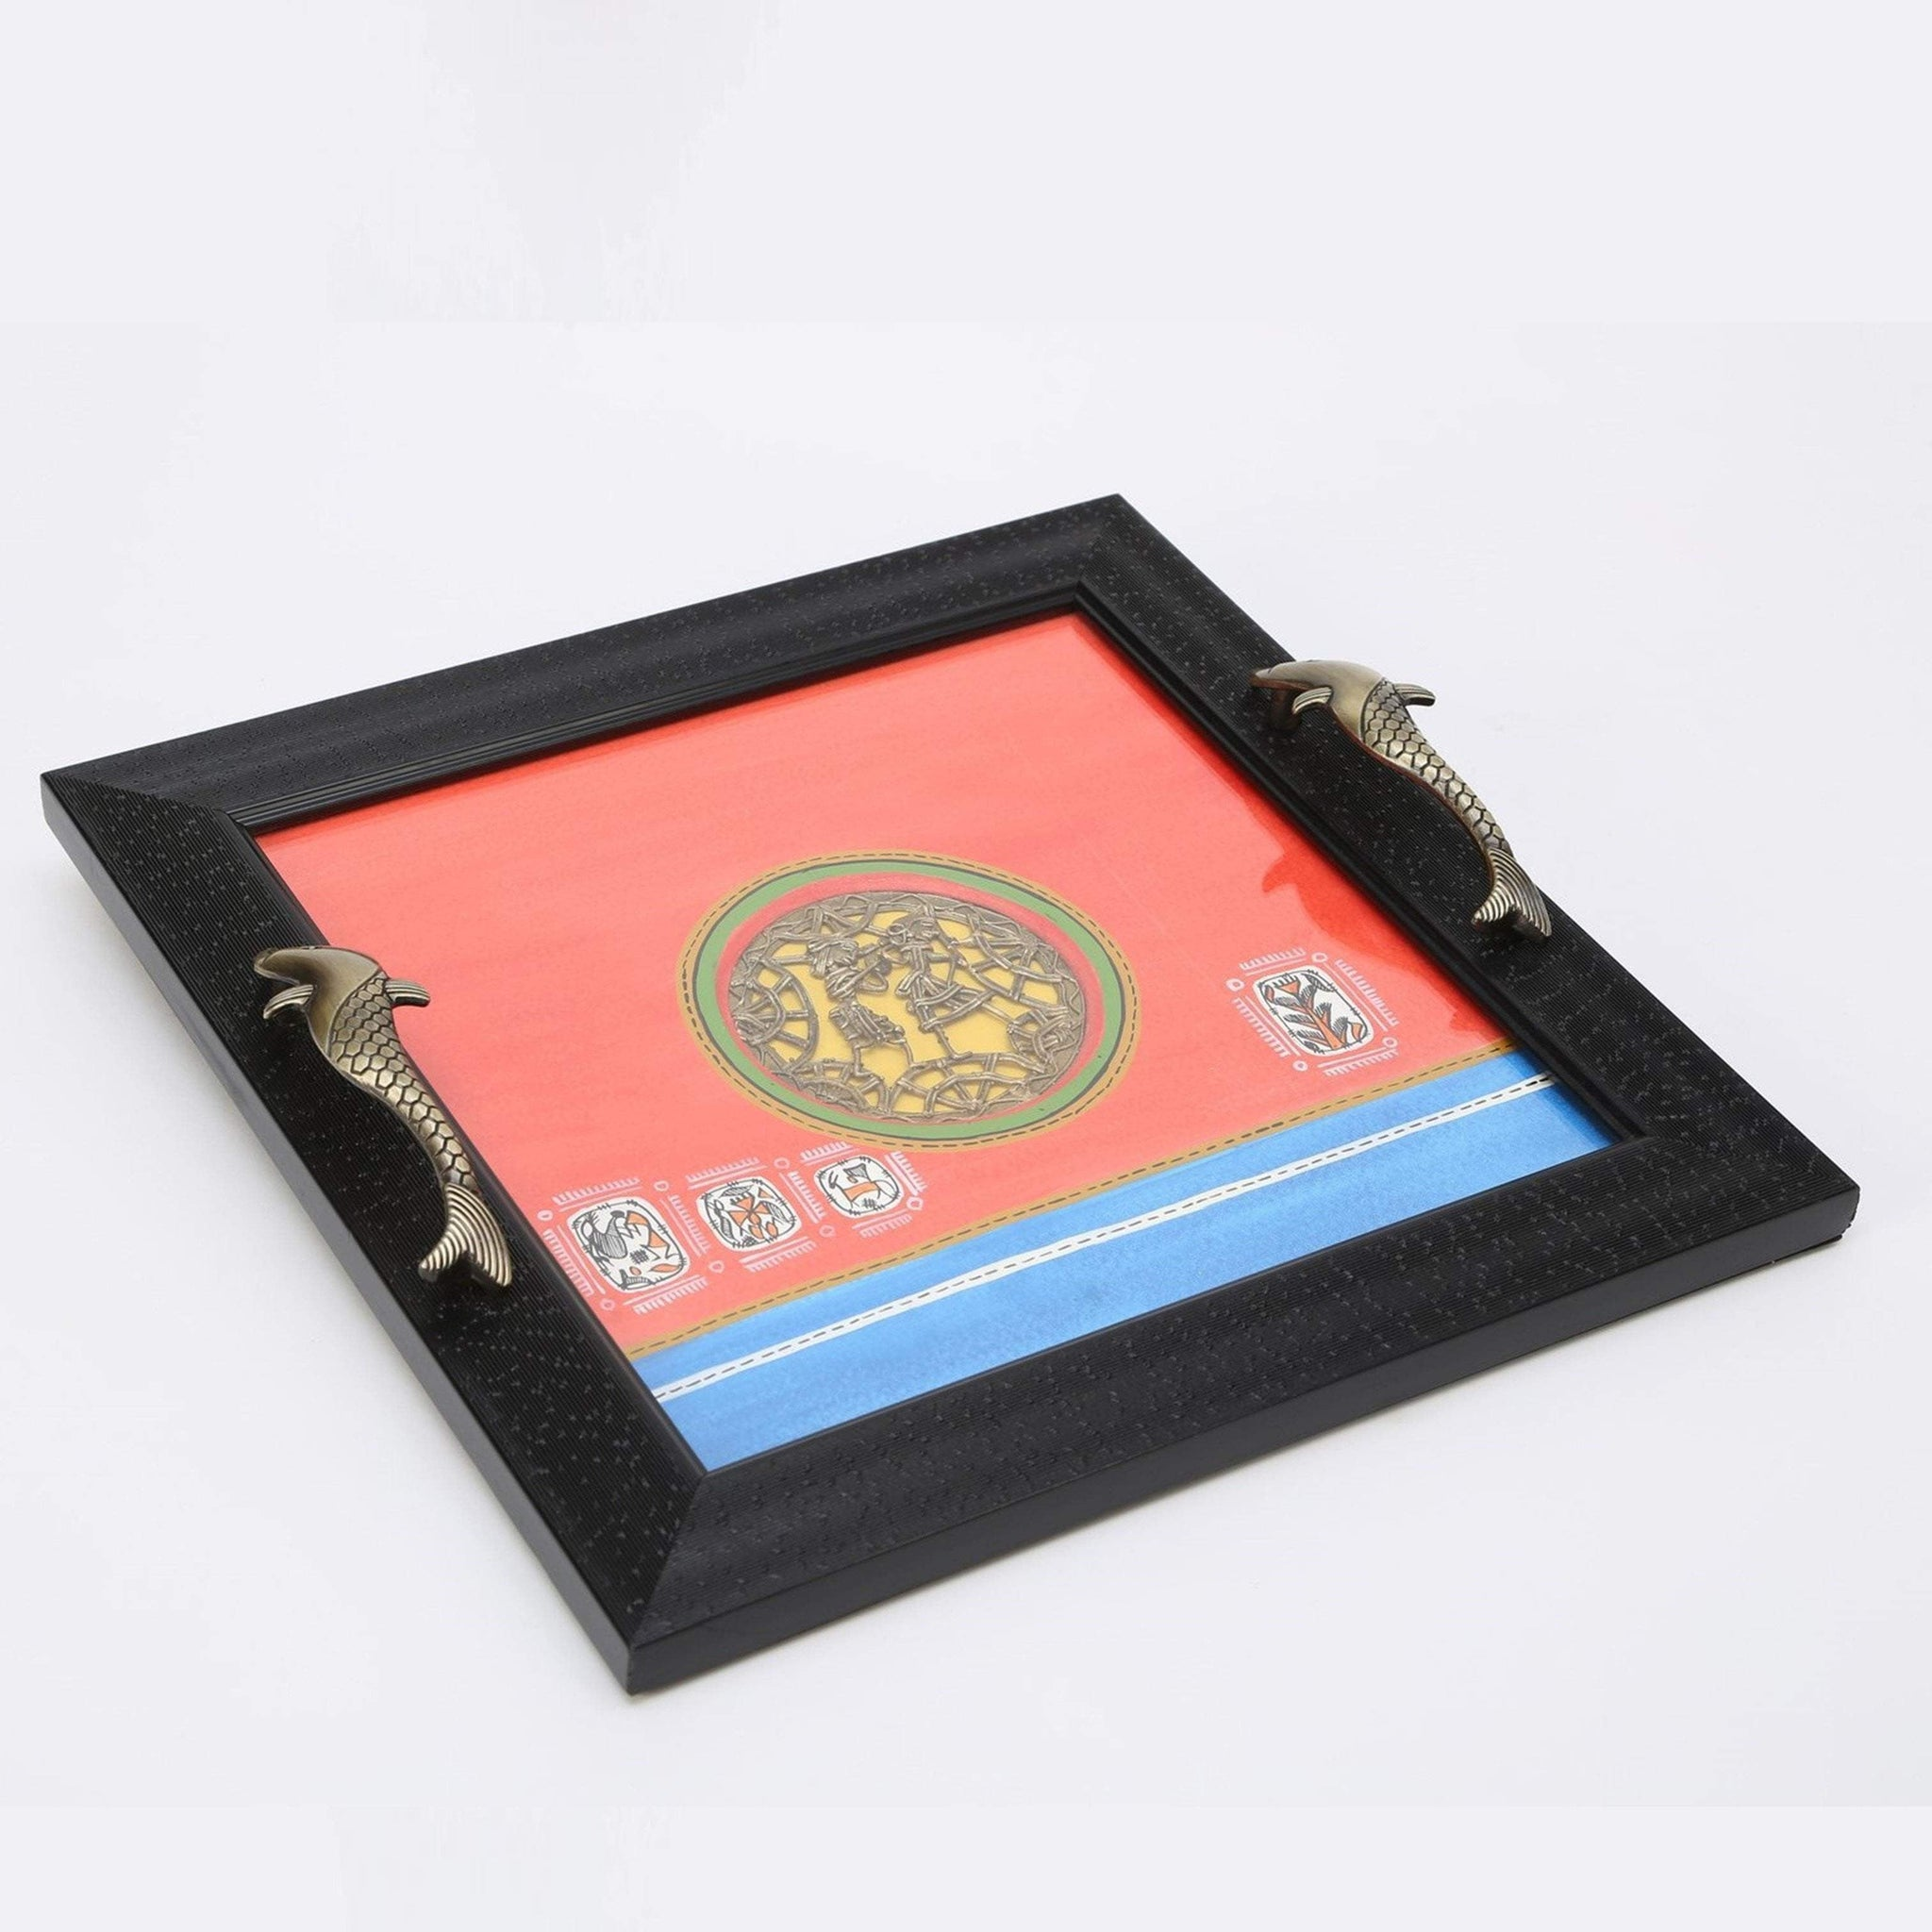 Hand Painted Decorative Wooden Tray With Antique Touch